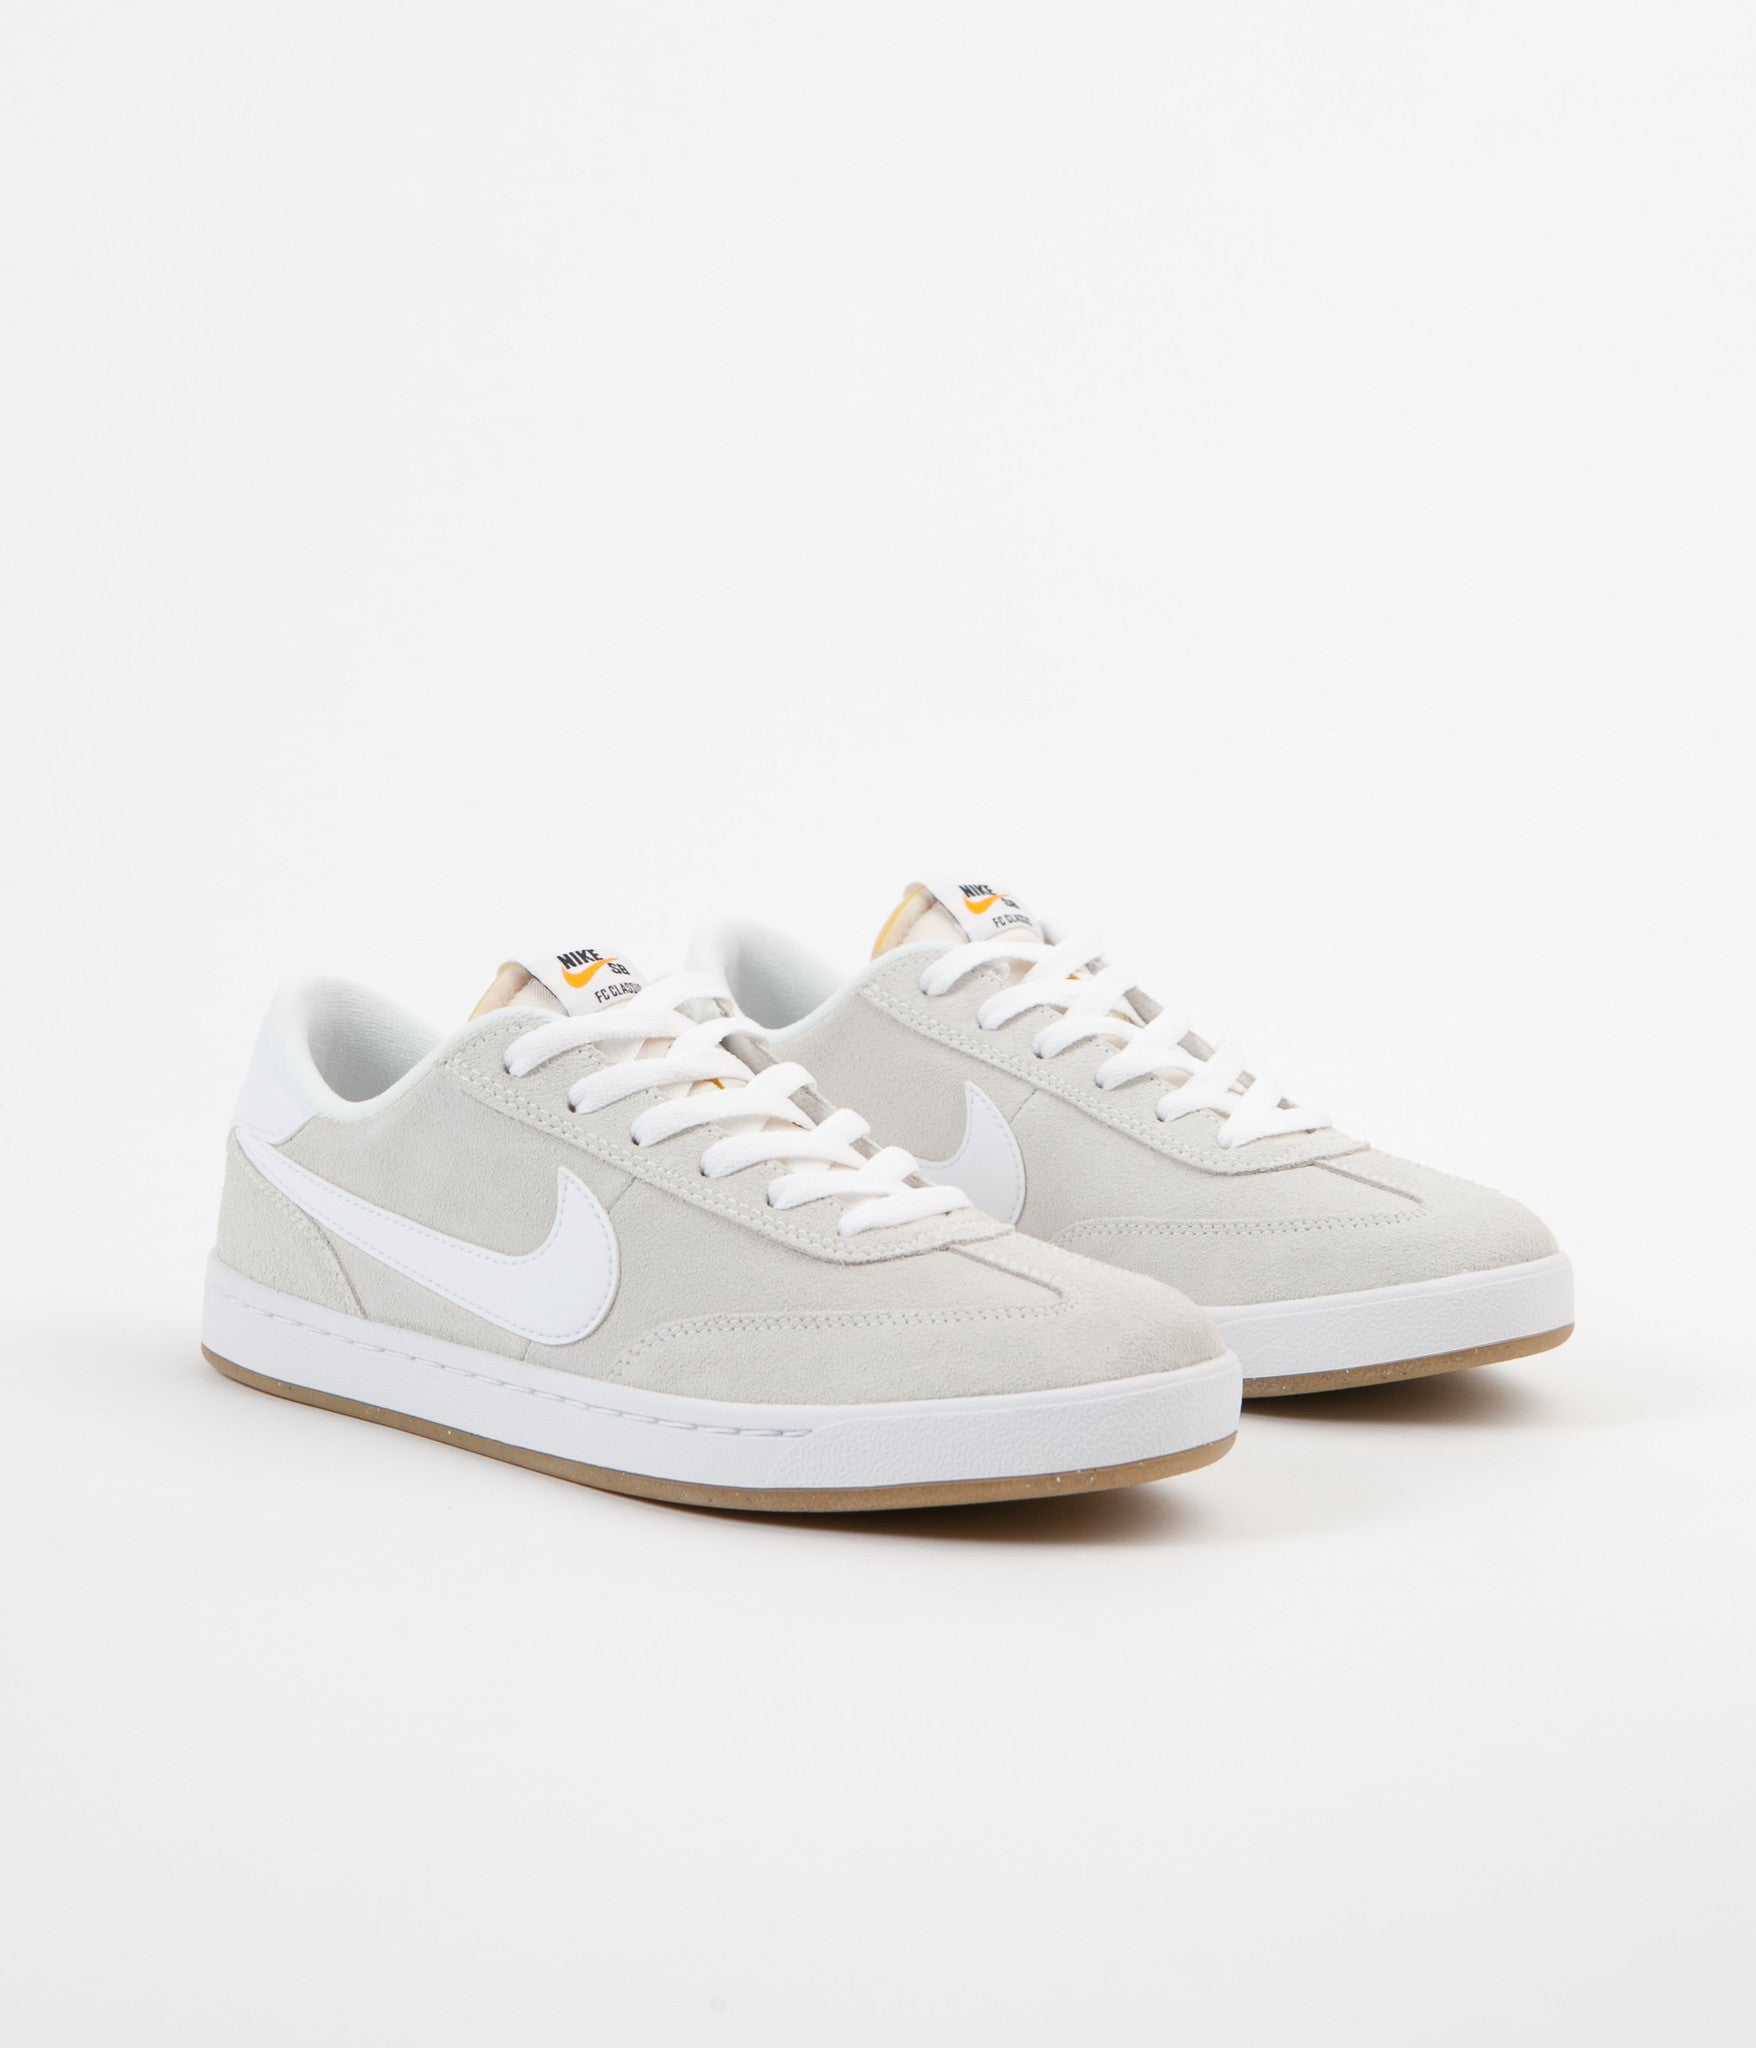 best service a6af1 90a27 ... Nike SB FC Classic Shoes - Summit White   Summit White - White ...